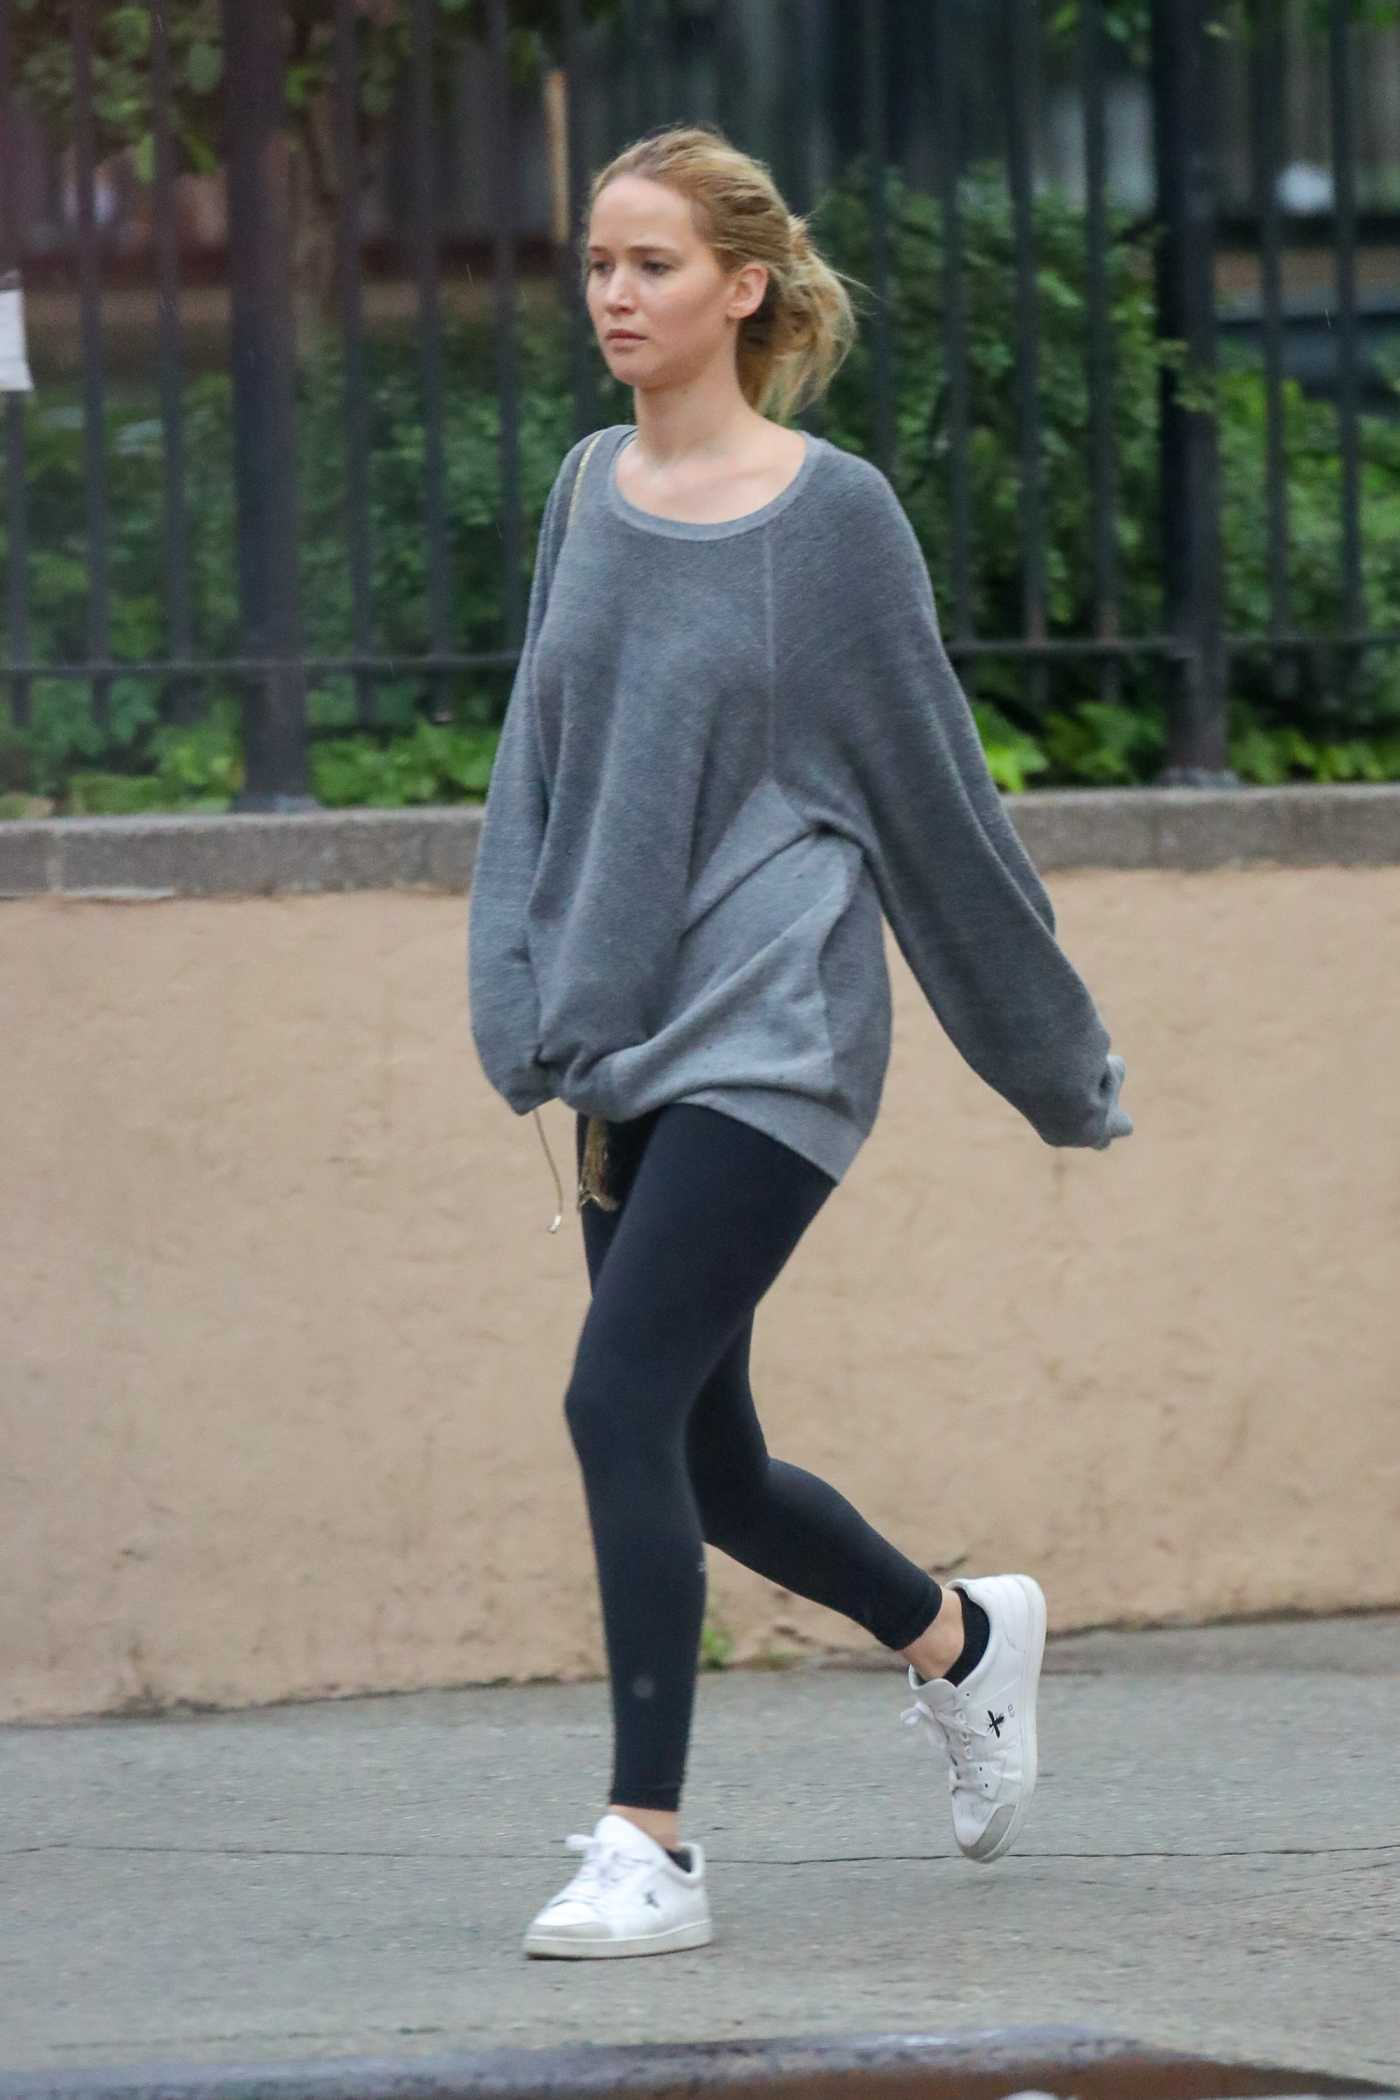 Jennifer Lawrence in a Gray Sweatshirt Was Seen Out in New York City 05/23/2019